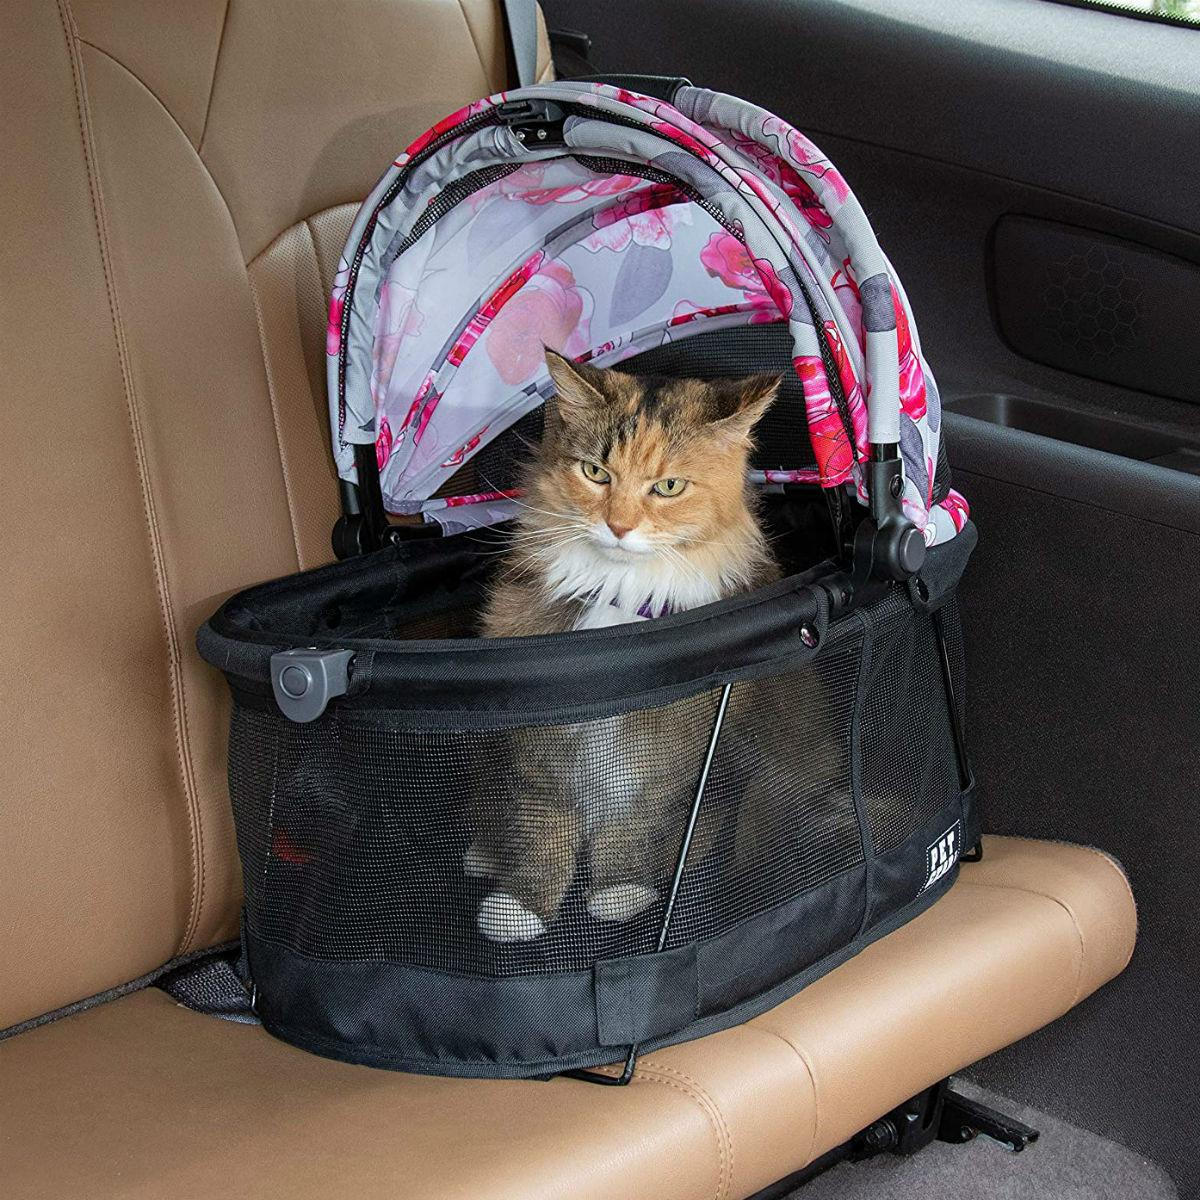 Pet Gear View 360 Dog and Cat Carrier - Floral